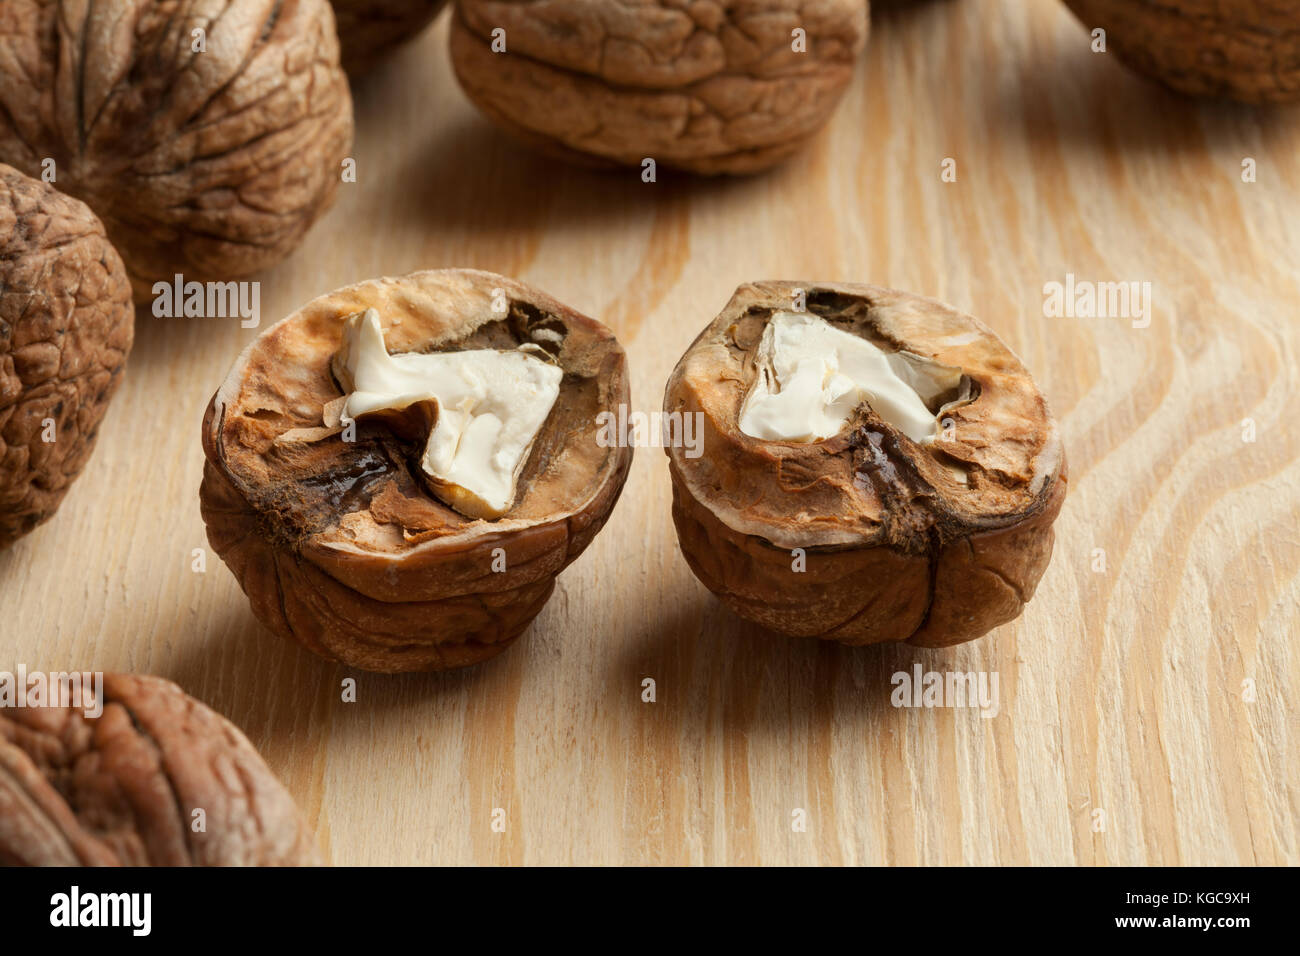 Two half fresh picked wet walnuts - Stock Image